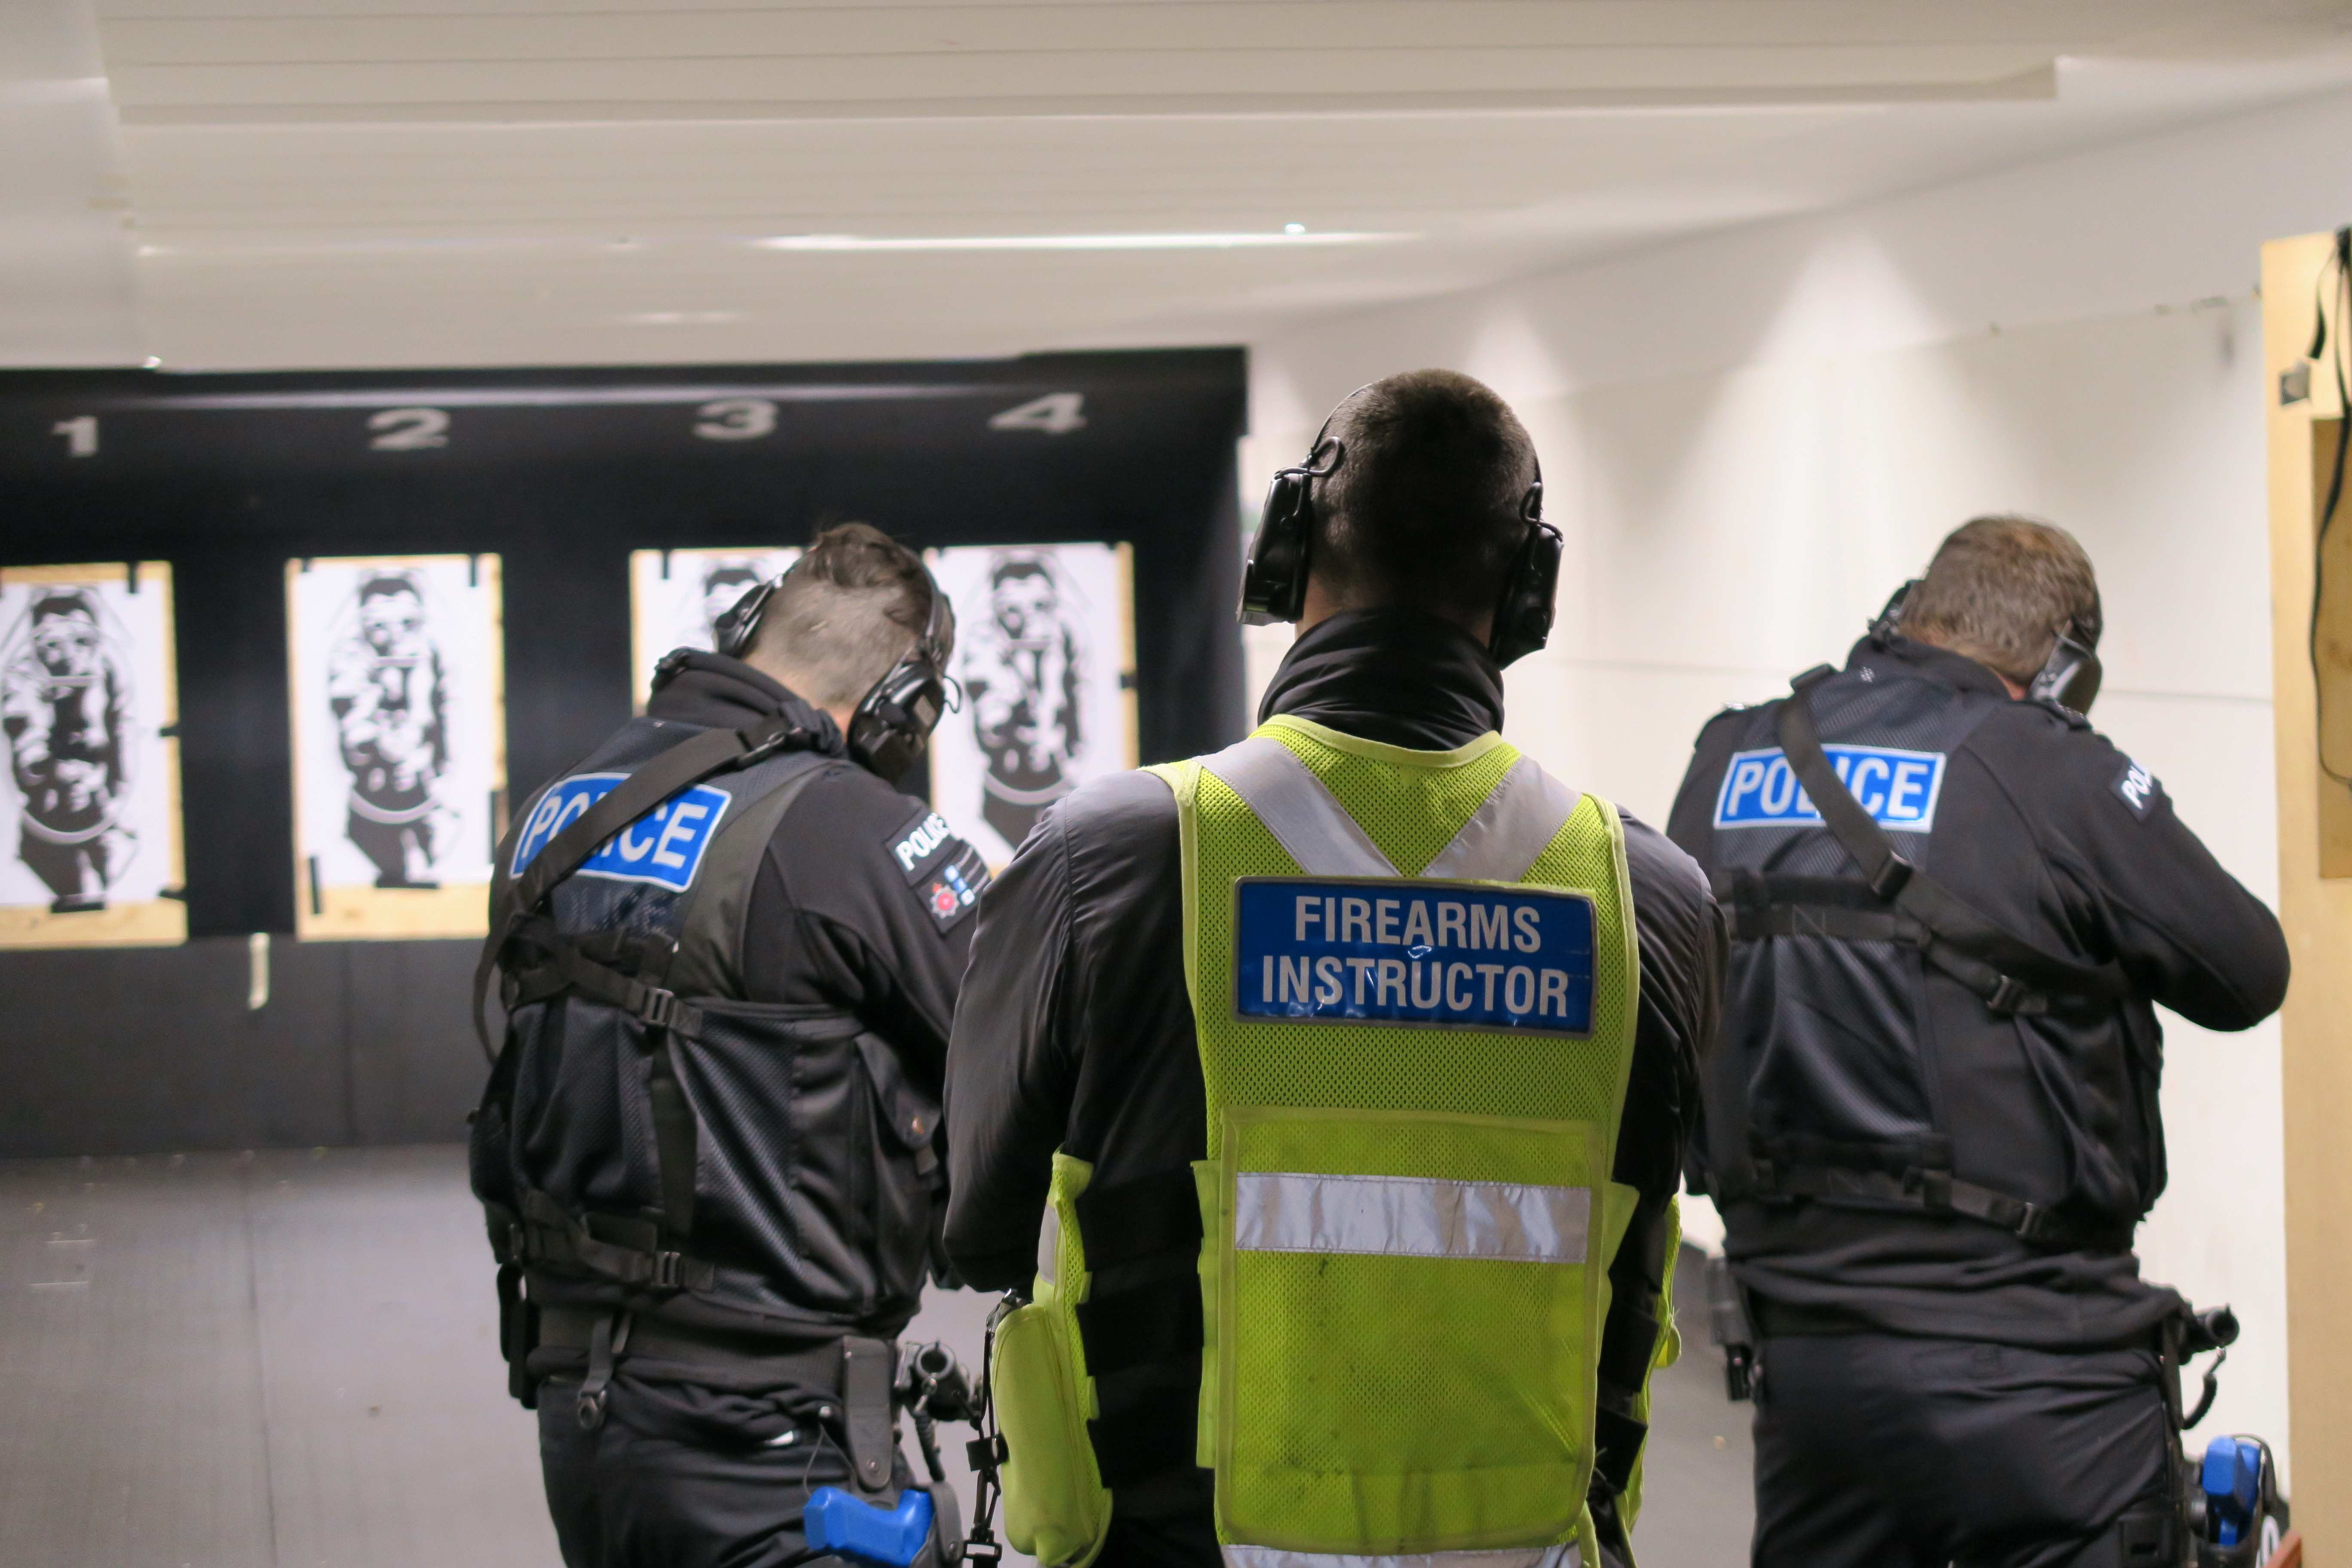 Police firearms capability essential due to 'dangerous and